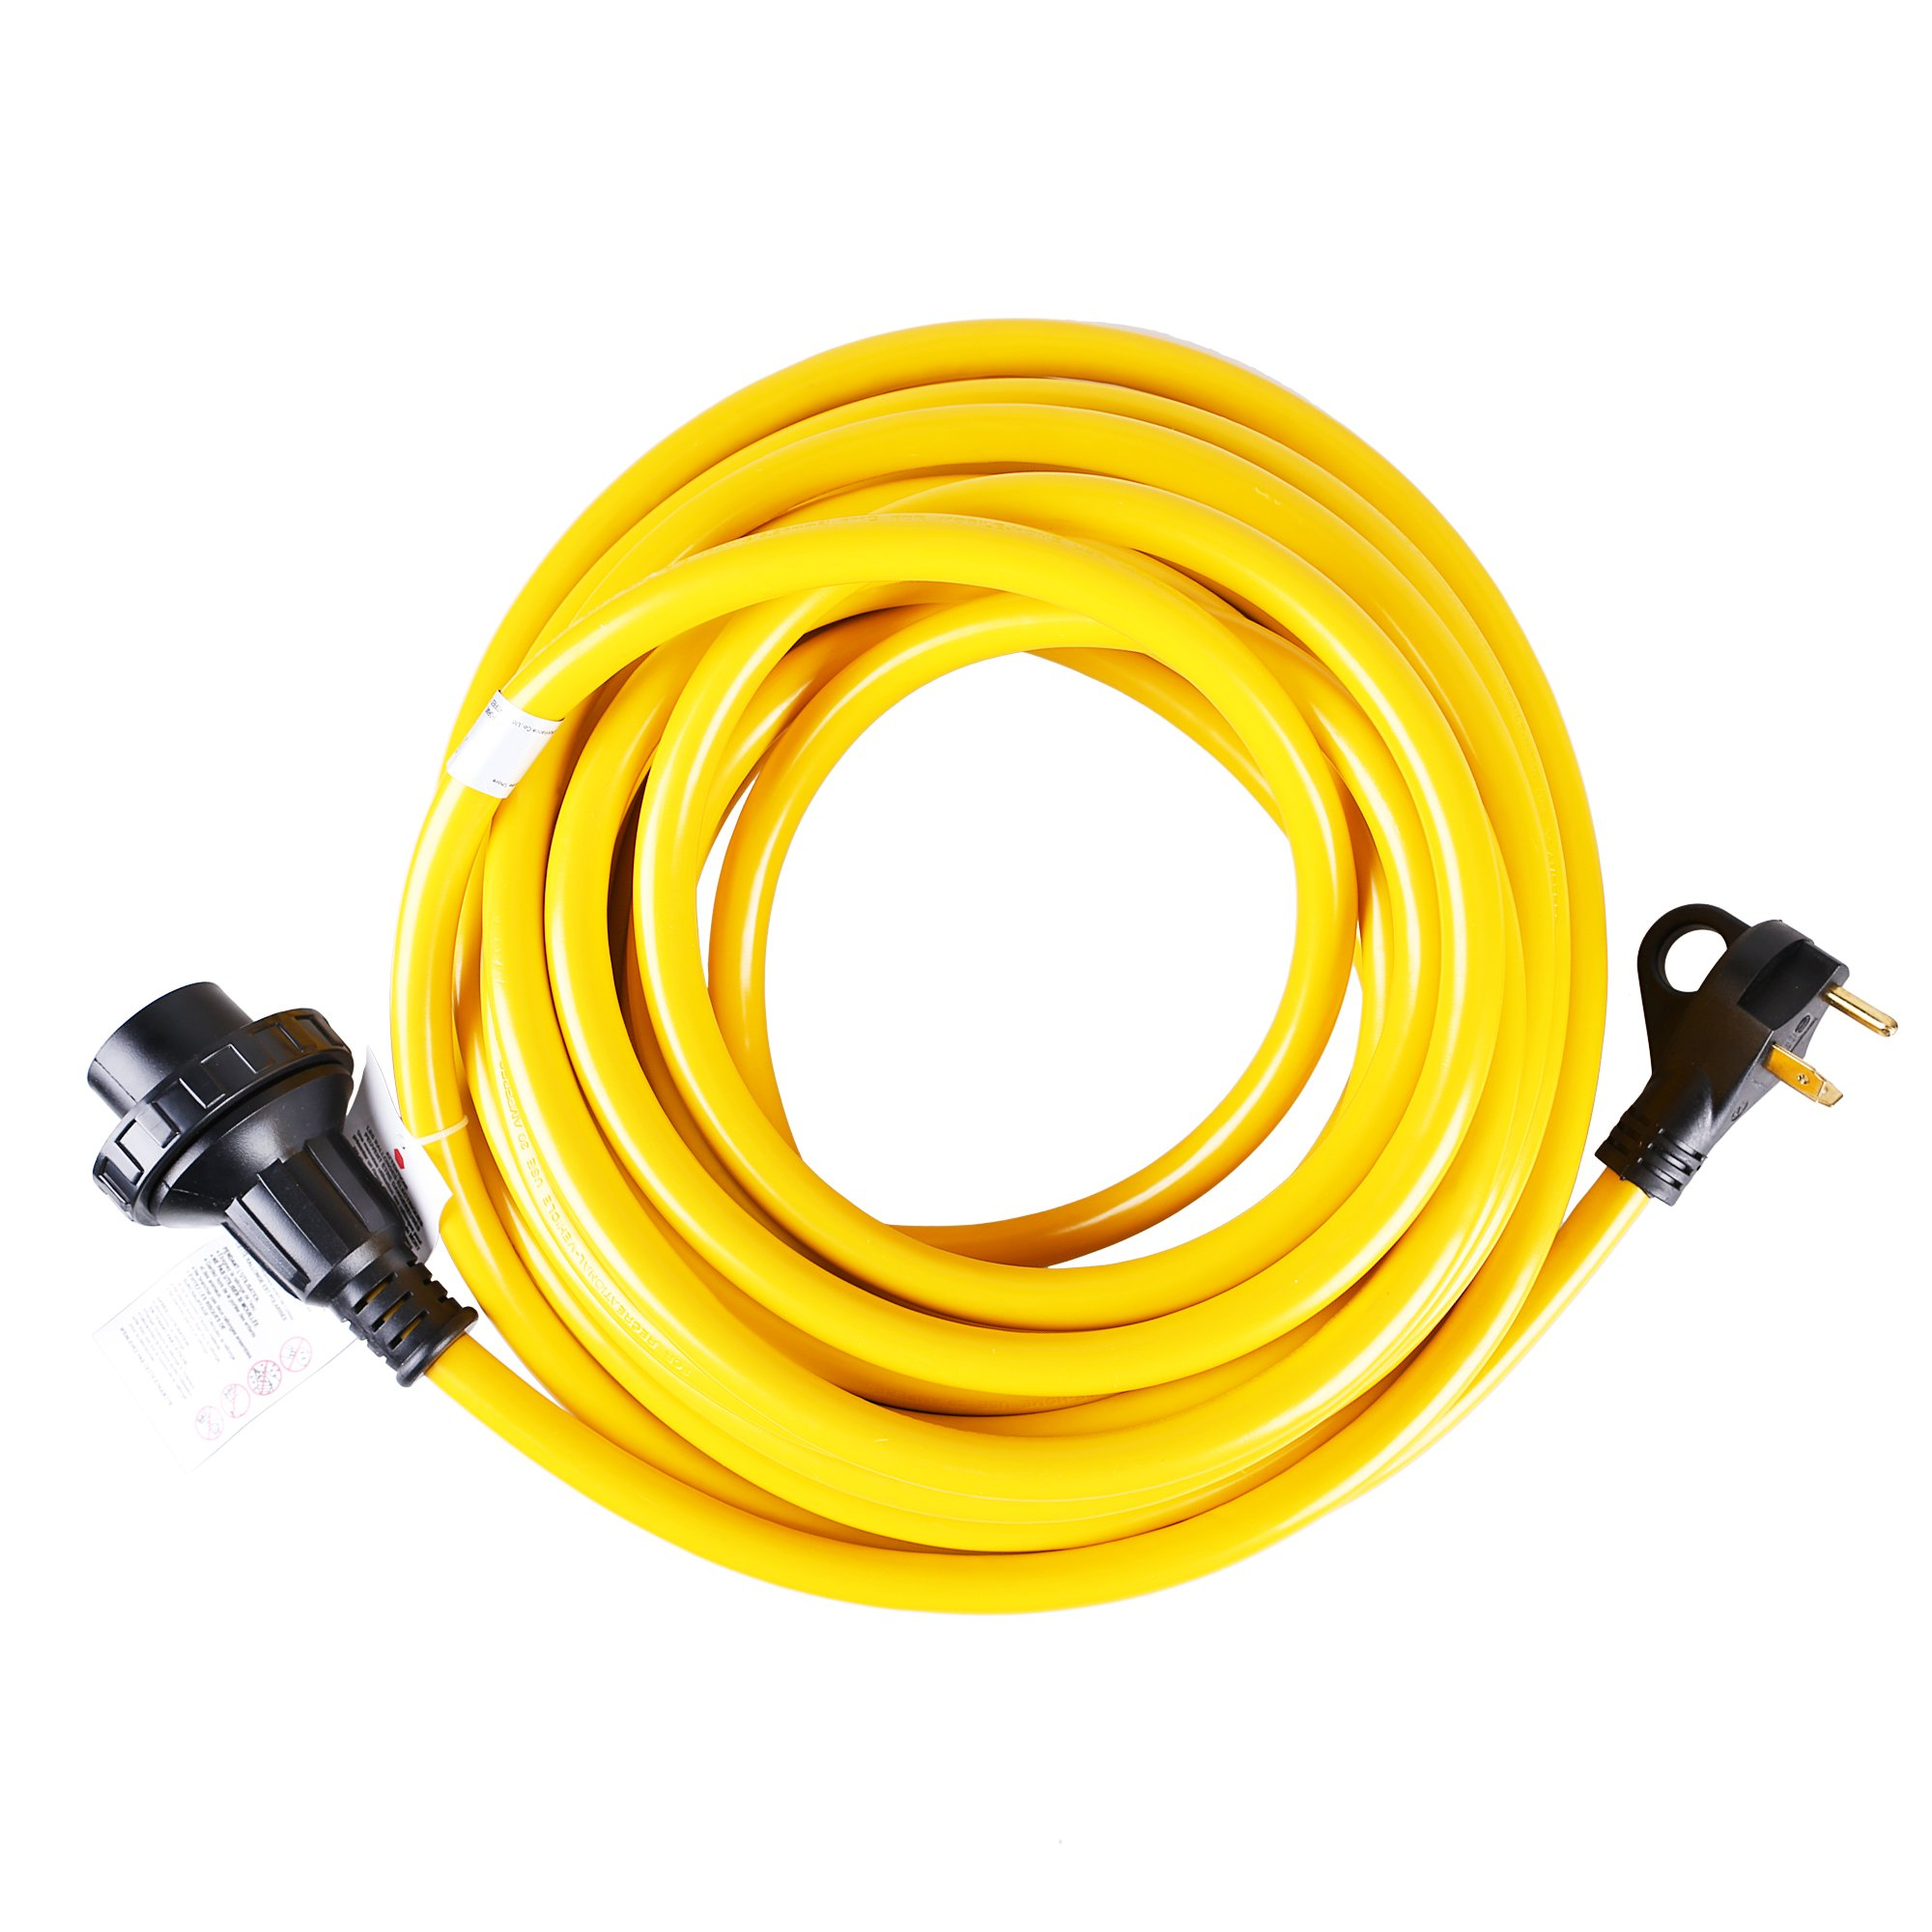 50' 30 Amp 3 Wire RV Twist Lock Power Cords Electrical with Finger Grip(50ft)